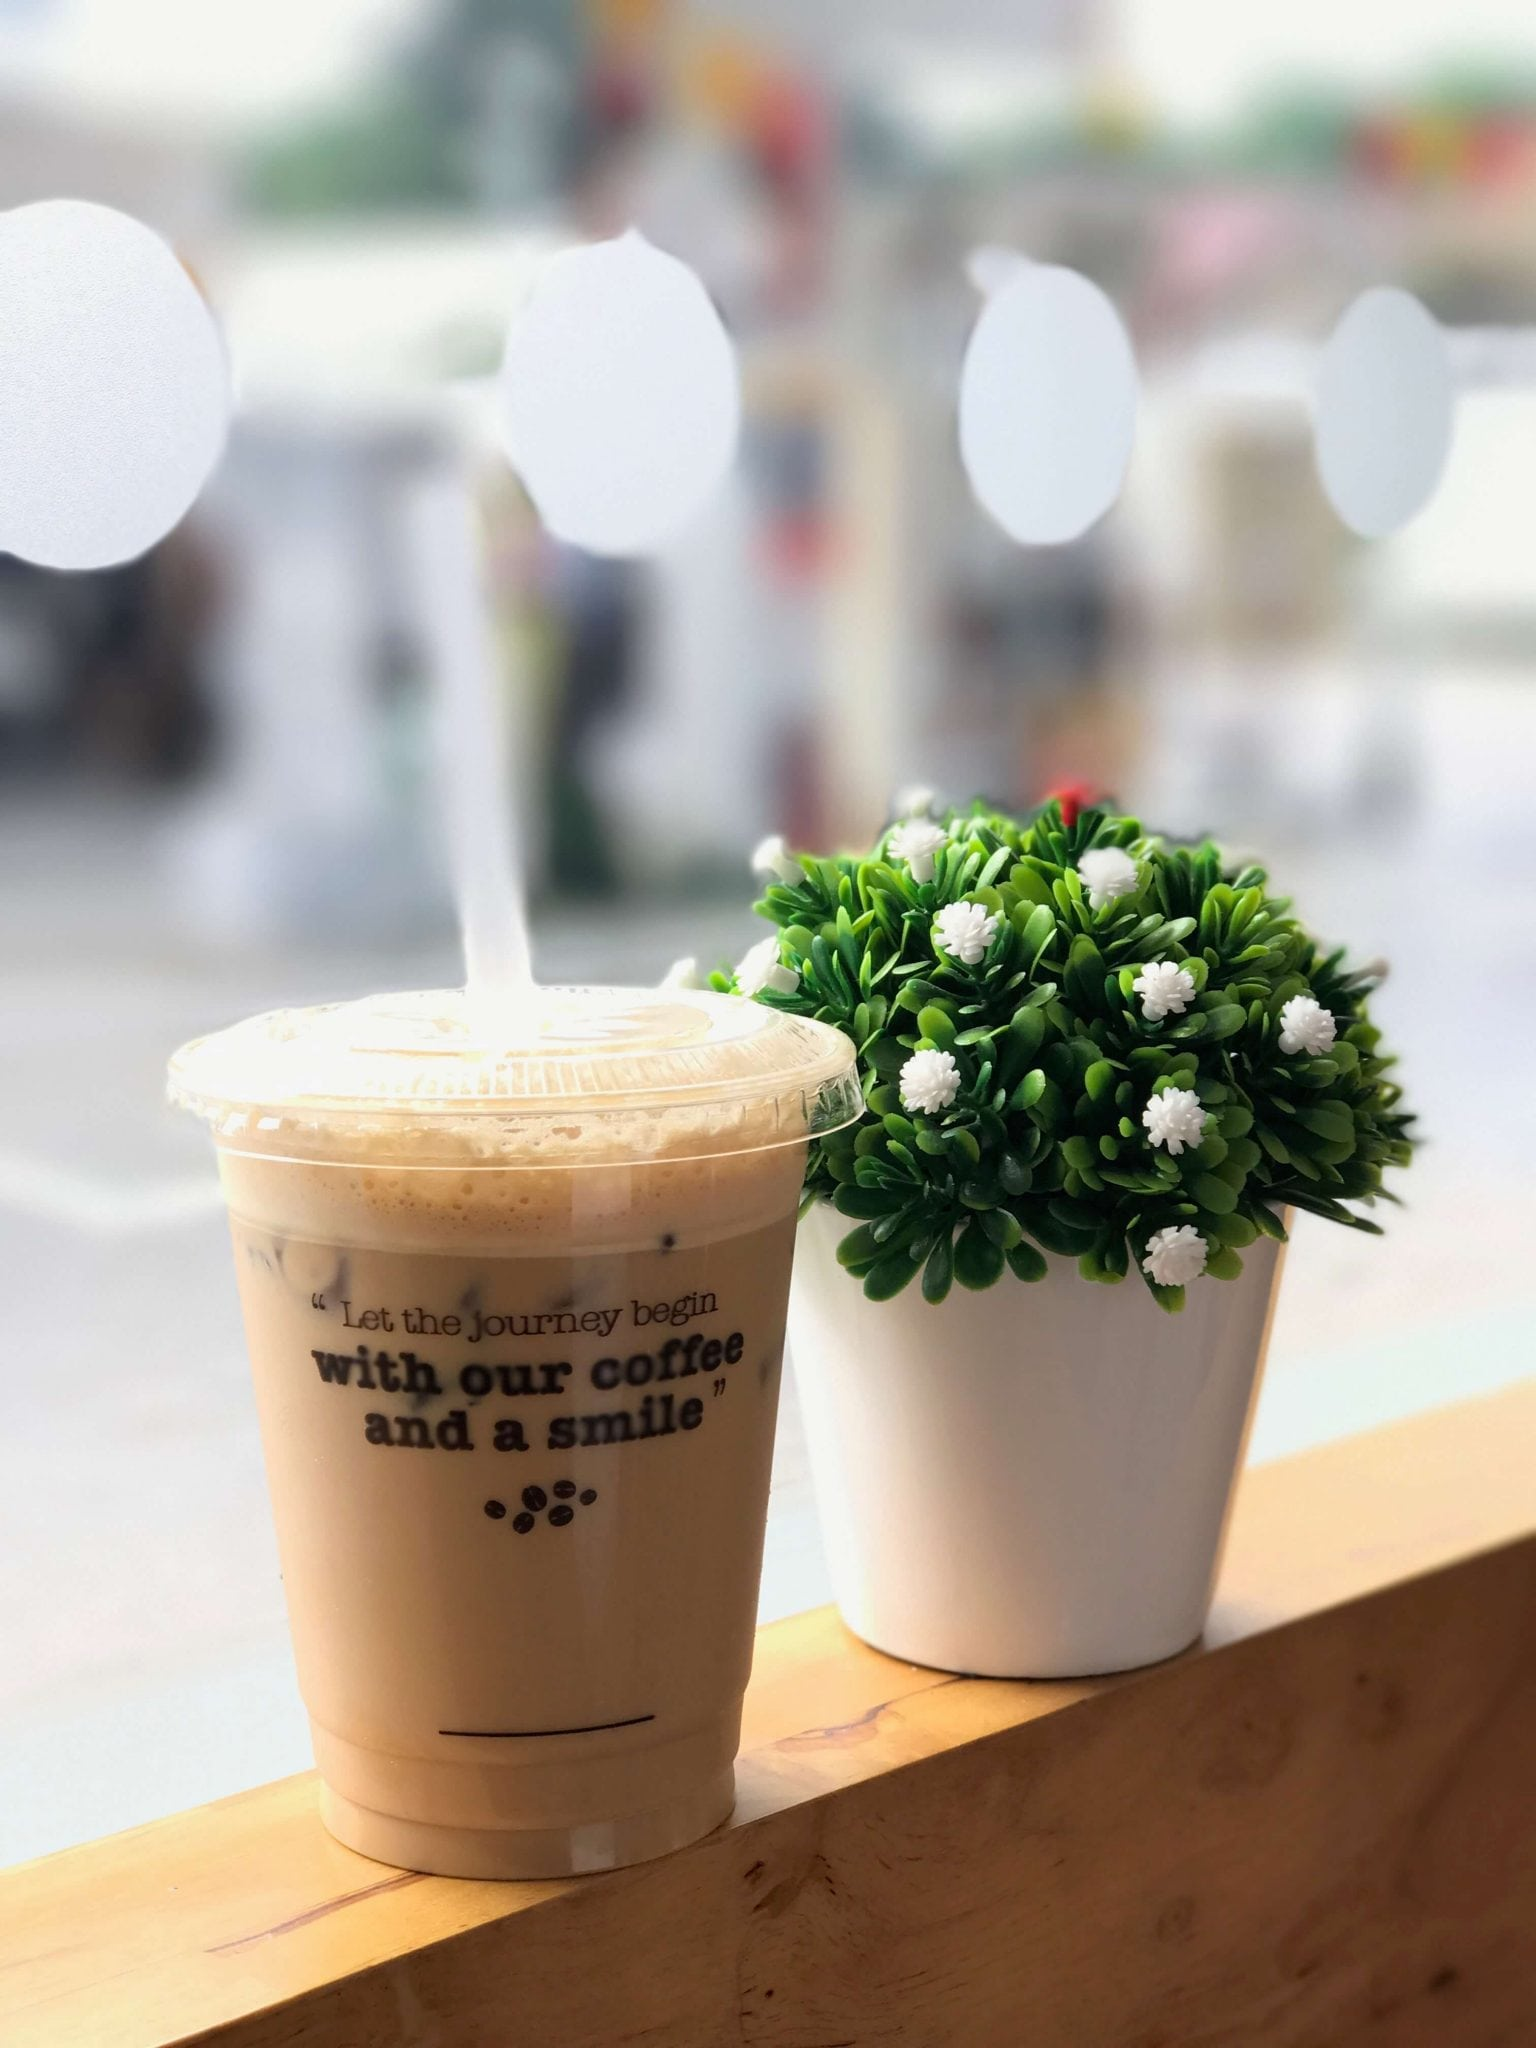 Iced cappucino in a plastic cup